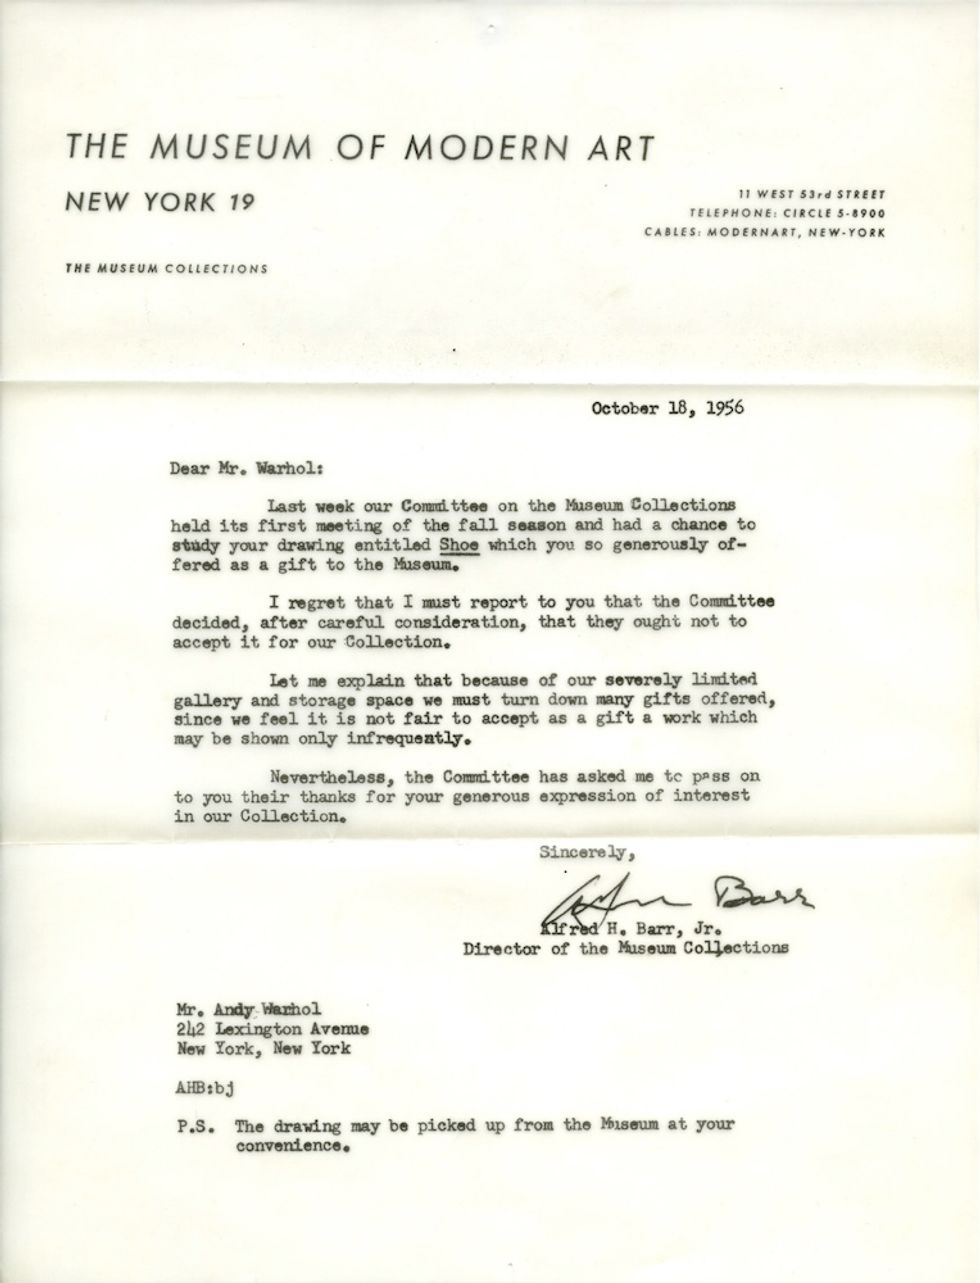 Andy Warhol's MoMA Rejection Letter